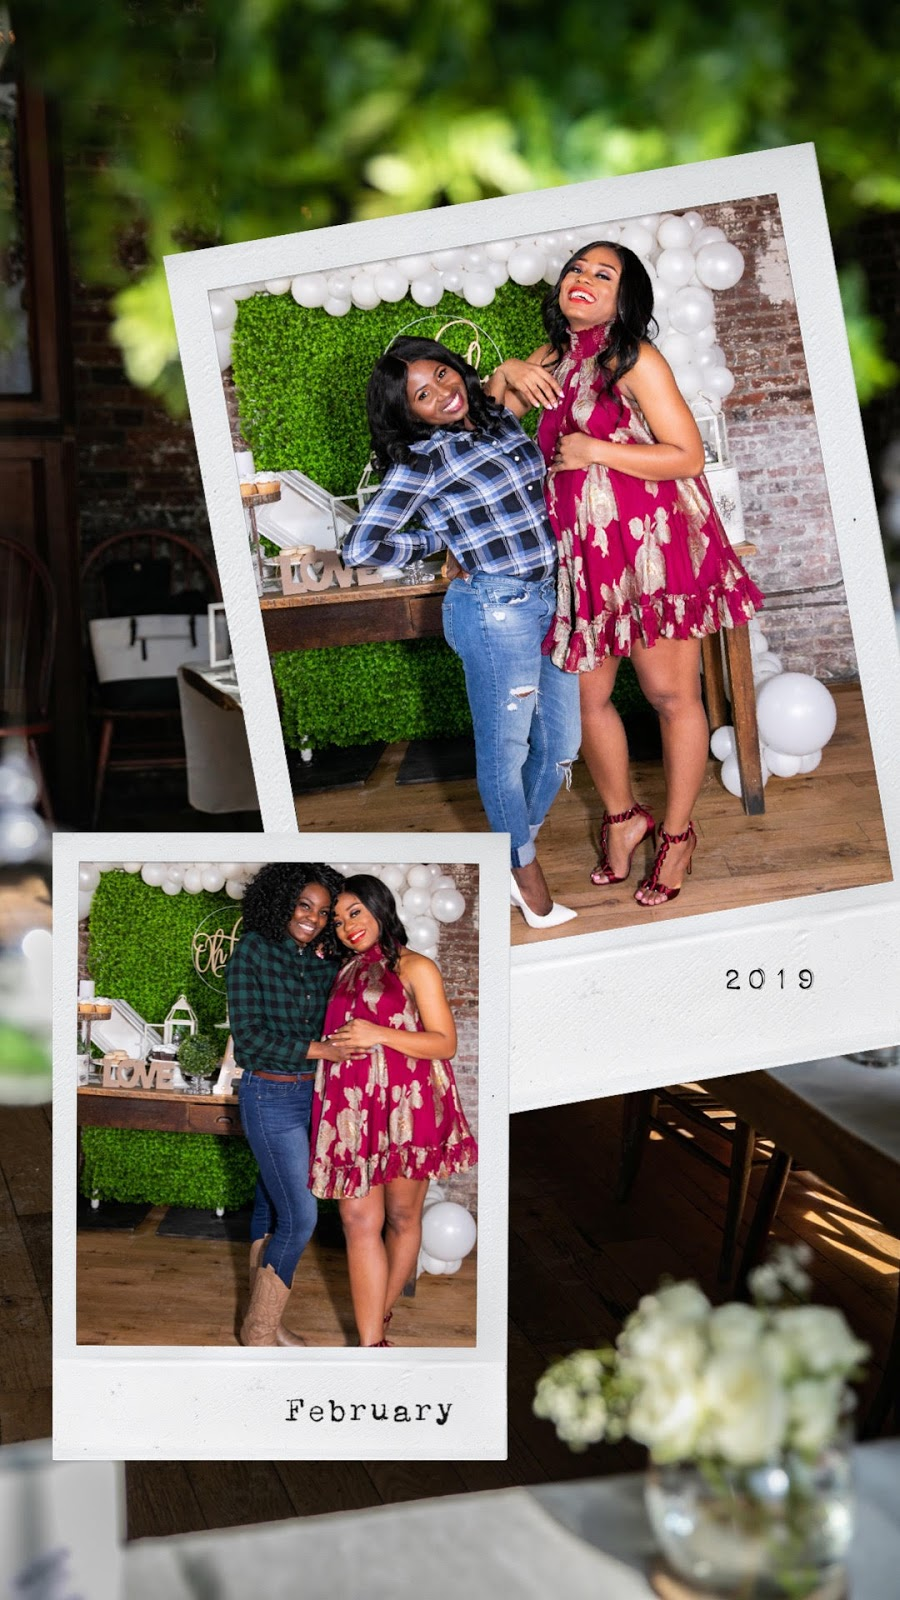 Stella-Adewunmi-of-Jadore-Fashion-share-baby-shower-outfit-and-f